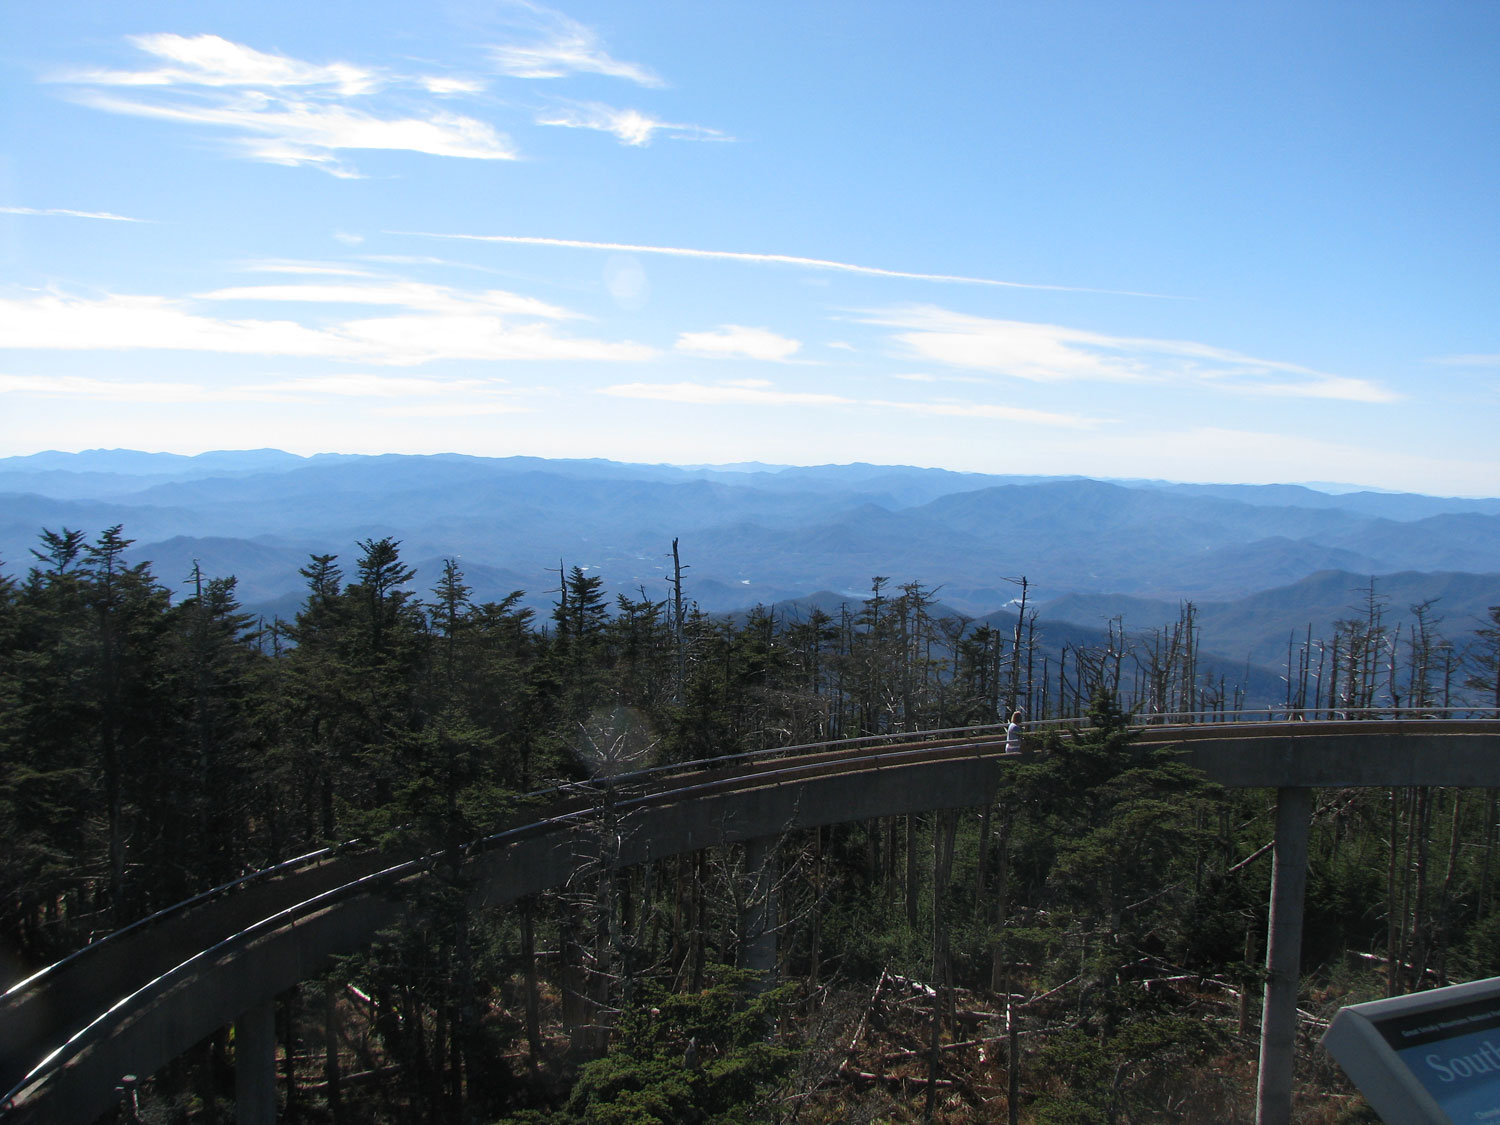 Looking south towards Brasstown Bald - the tower ramp is in the foreground